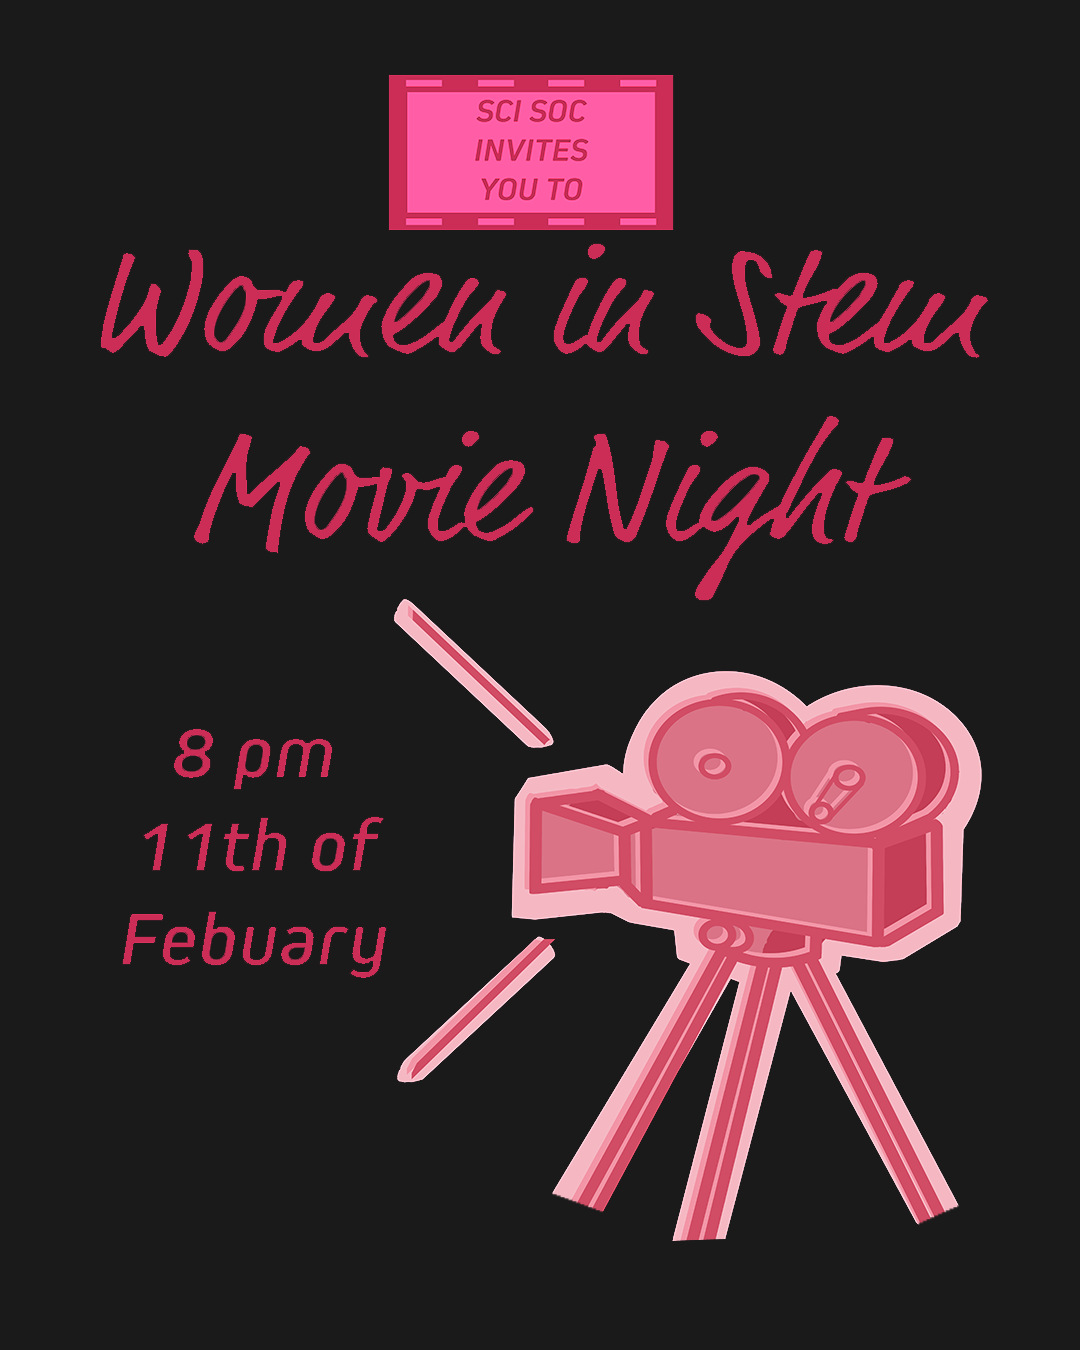 poster for movie night with science soc and w+is soc